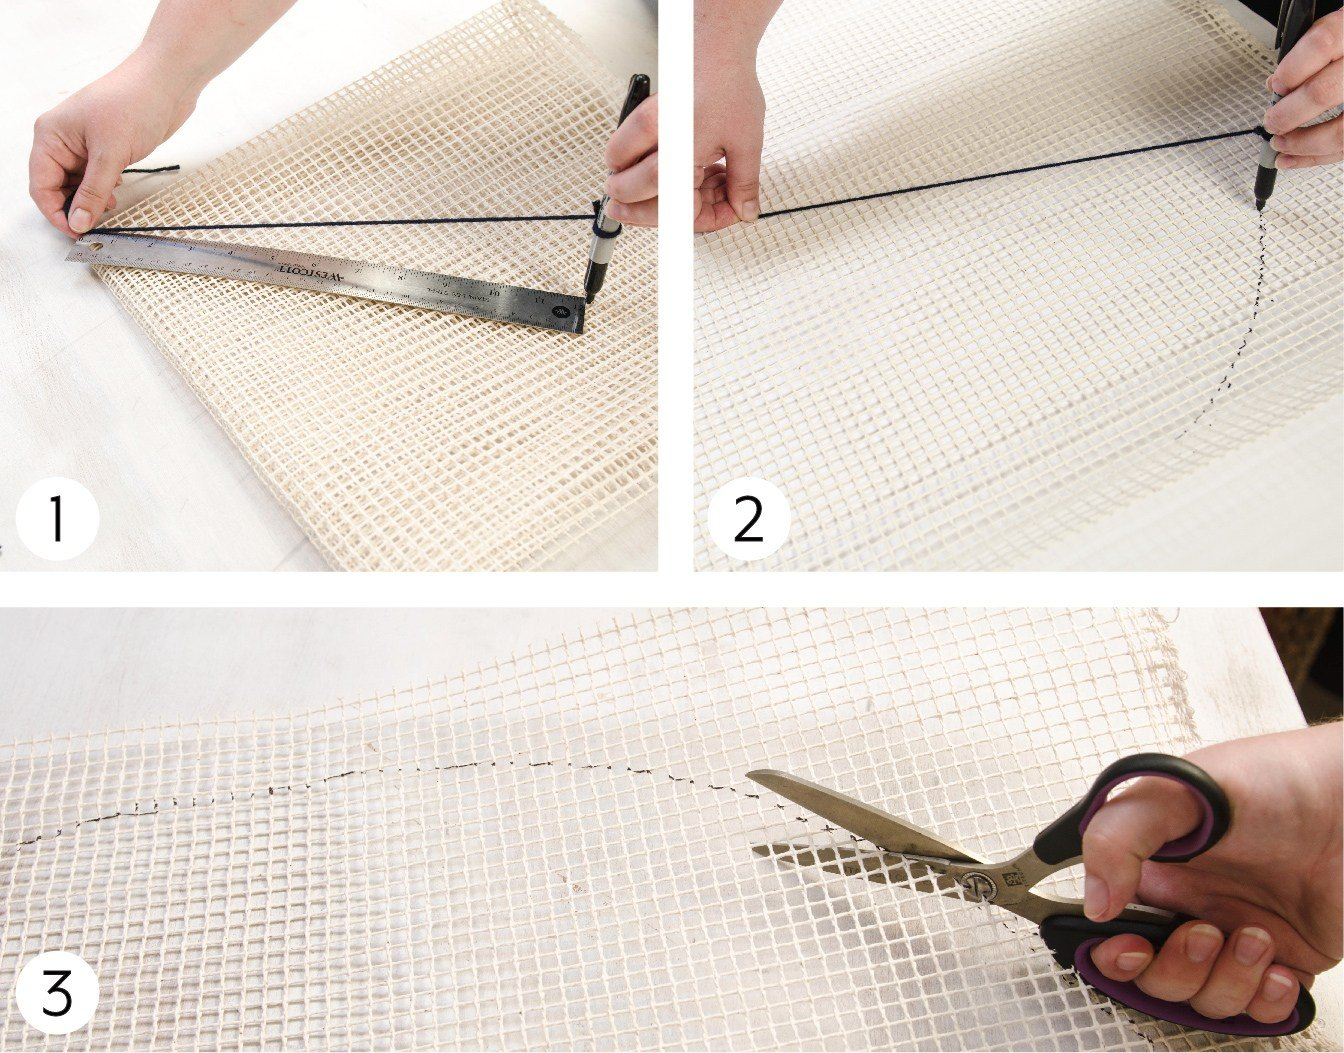 Making a Pompom Wall Hanging Steps 1 - 3 Images